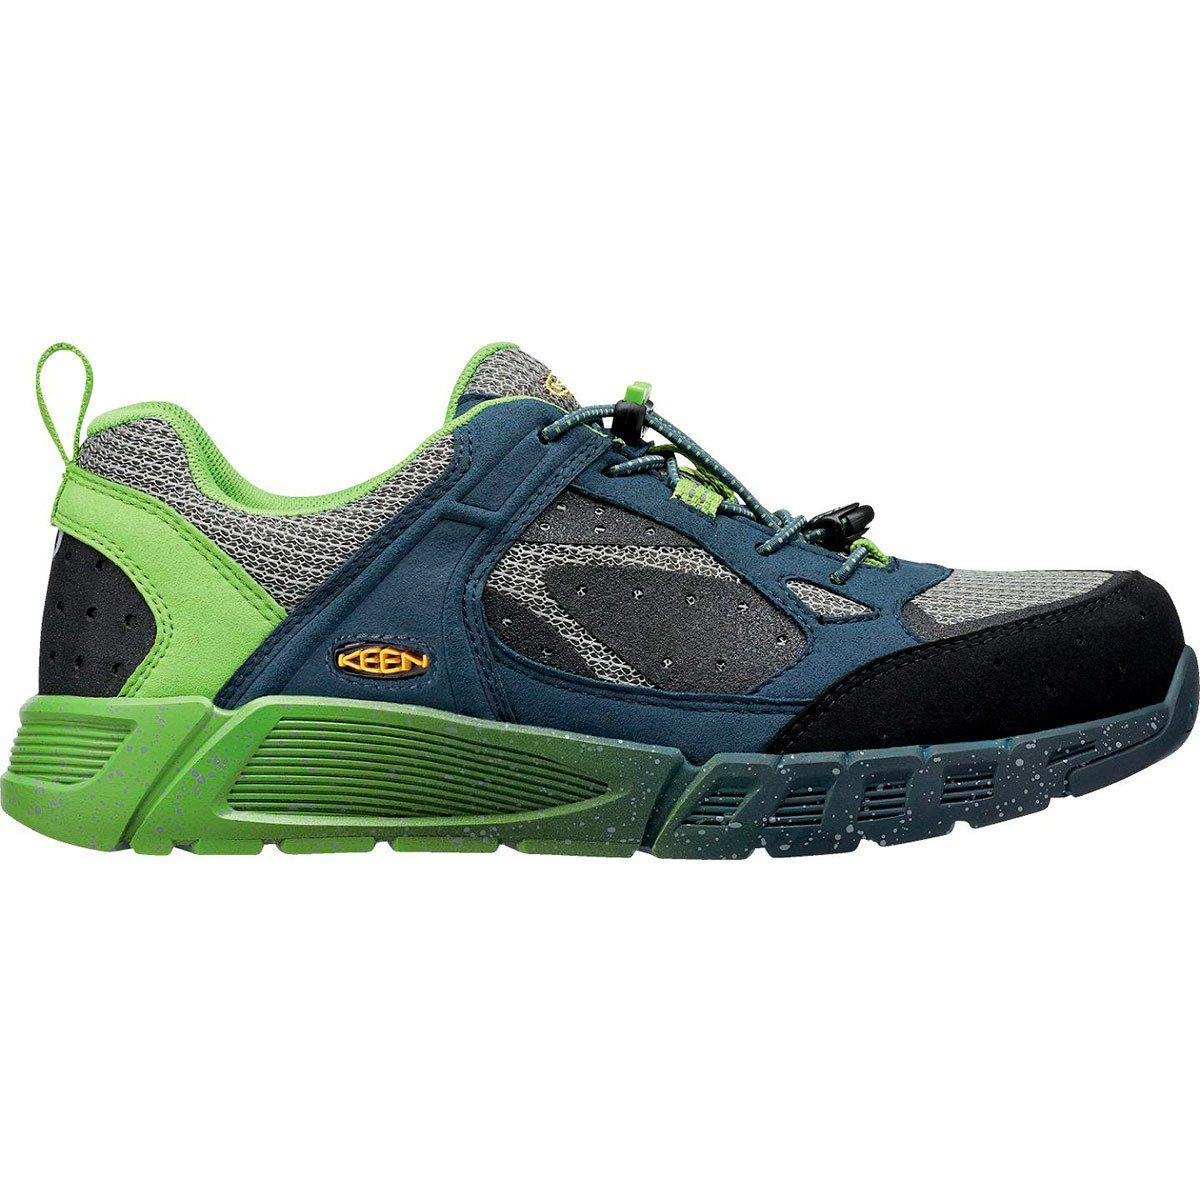 Keen Work Shoes